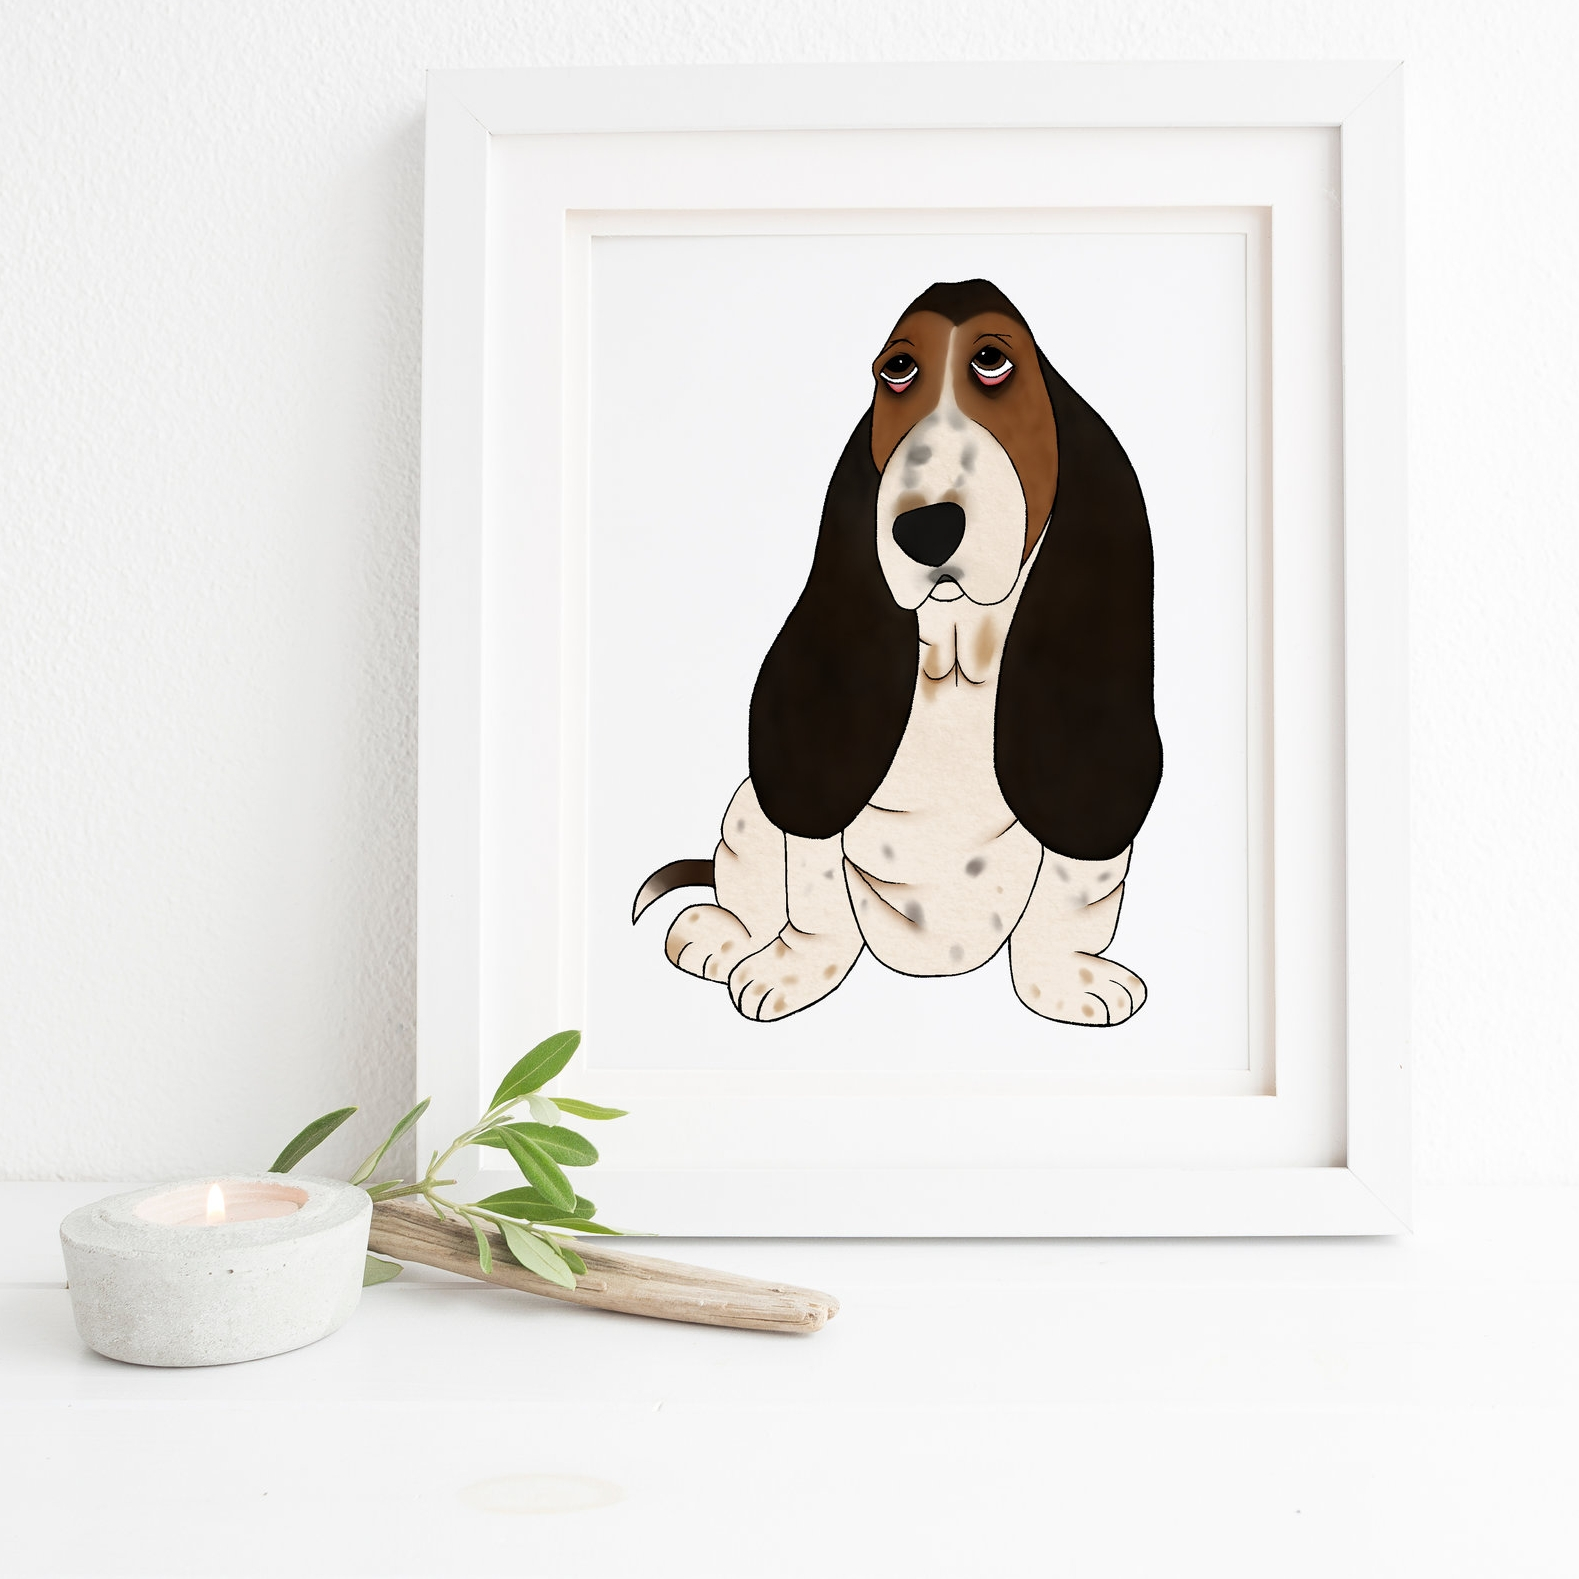 I ordered a custom print of my dog for our first baby's nursery. Bri was super helpful and wonderful to work with. She ended up giving us the perfect print that captured the personality of our pup and will be a wonderful addition to the nursery! - Lauren Berzins [from etsy]